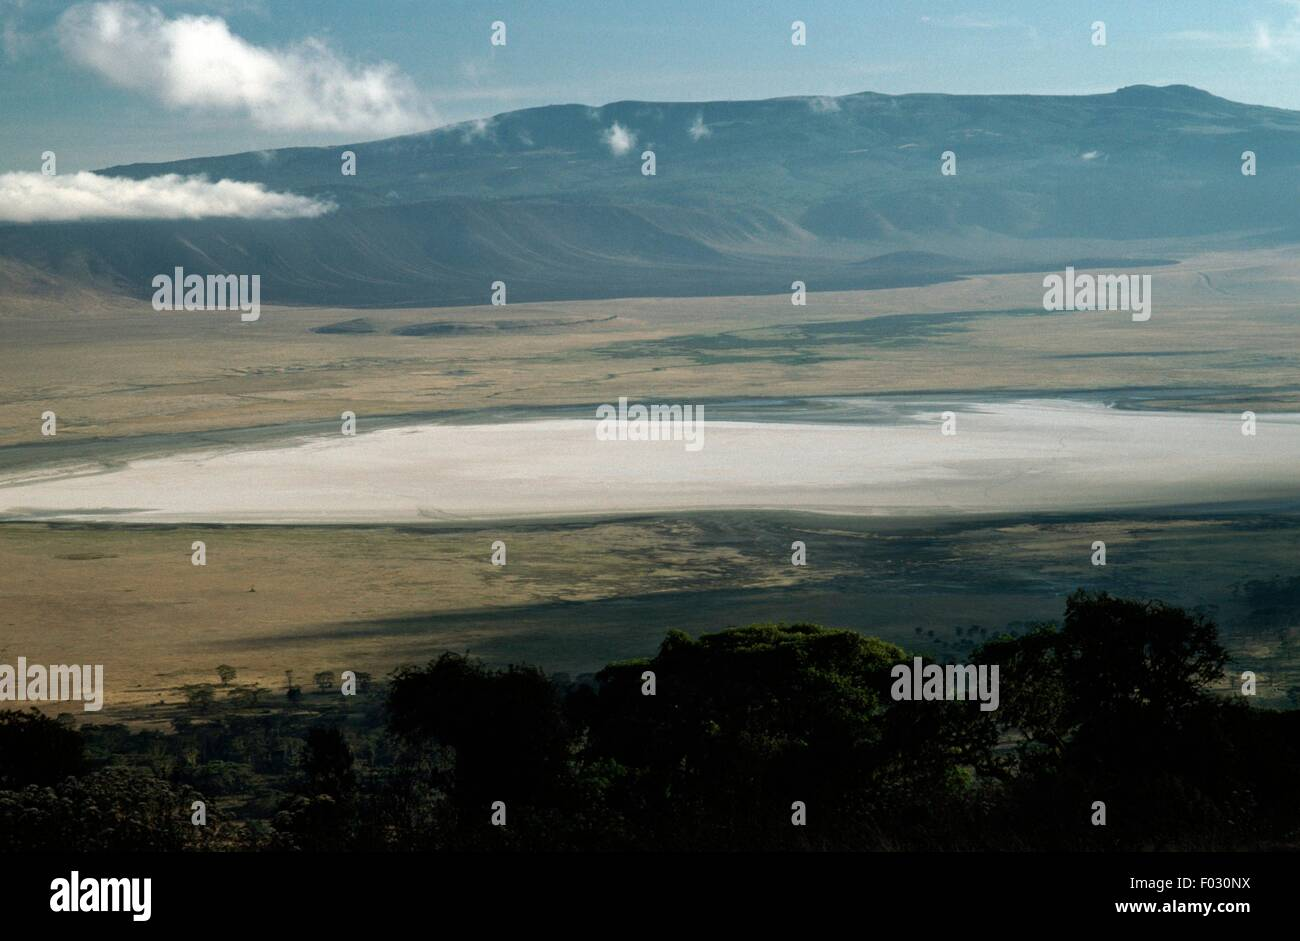 A body of water in the crater of Ngorongoro, Ngorongoro Conservation Area (UNESCO World Heritage List, 1979), Tanzania. - Stock Image